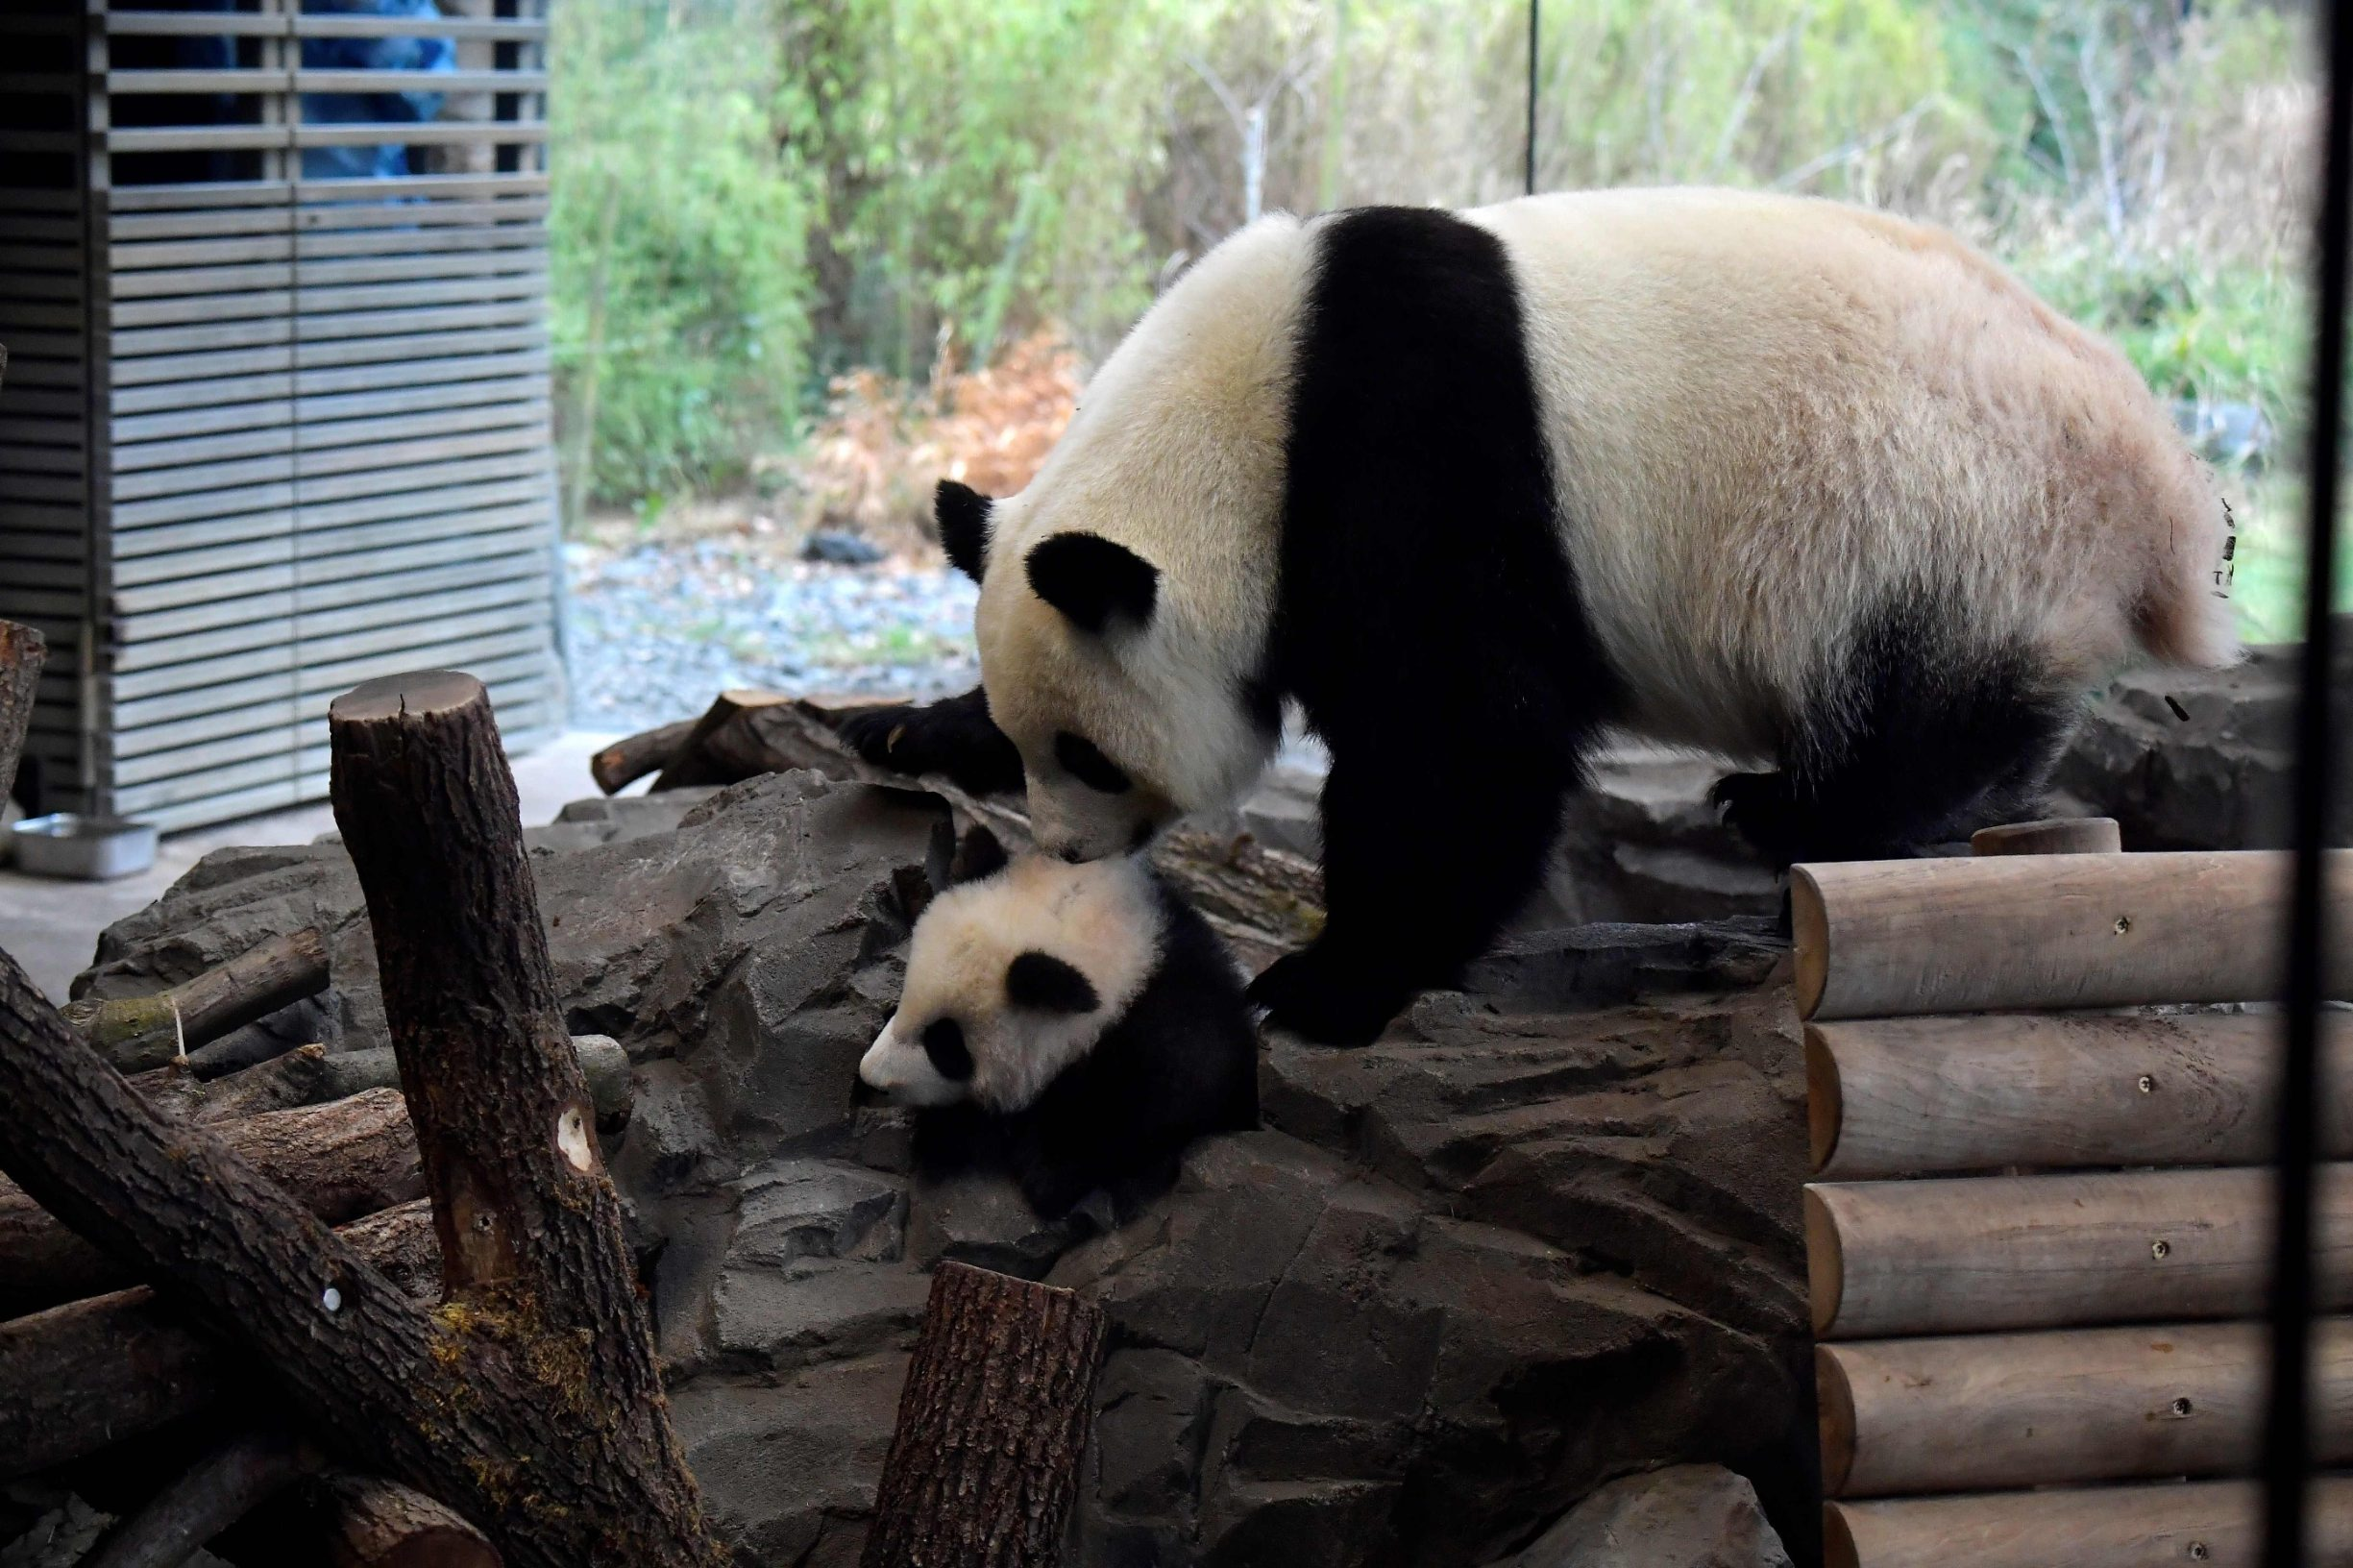 A picture taken on January 29, 2020 shows one of the two giant panda cubs with his mother Meng Meng at their enclosure during the first presentation of Berlin-born Chinese panda cubs Meng Yuan and Meng Xiang to the public at the Zoologischer Garten zoo in Berlin. - Meng Meng gave birth to twins on August 31, 2019. On loan from China, Meng Meng and male panda Jiao Qing arrived in Berlin in June 2017. While the cubs, Meng Yuan and Meng Xiang, are born in Berlin, they remain Chinese and must be returned to China within four years after they have been weaned. (Photo by Tobias SCHWARZ / AFP)